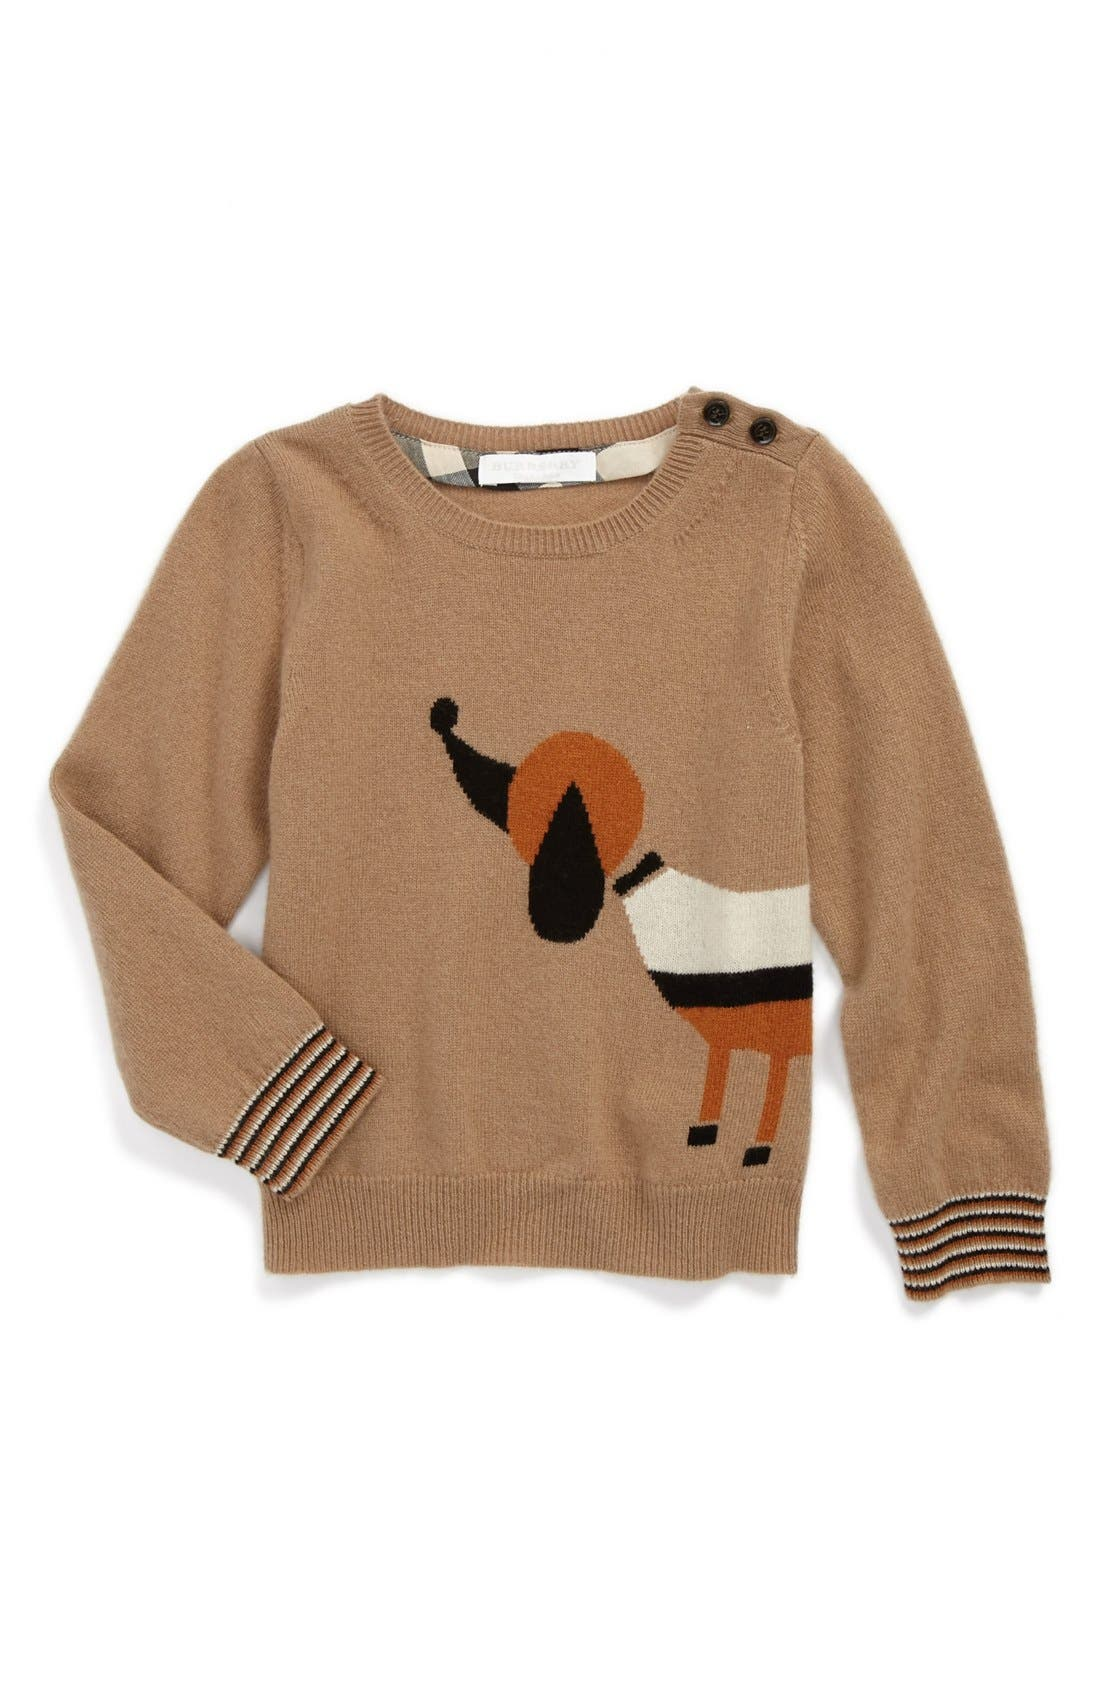 Main Image - Burberry Dog Sweater (Toddler Girls)